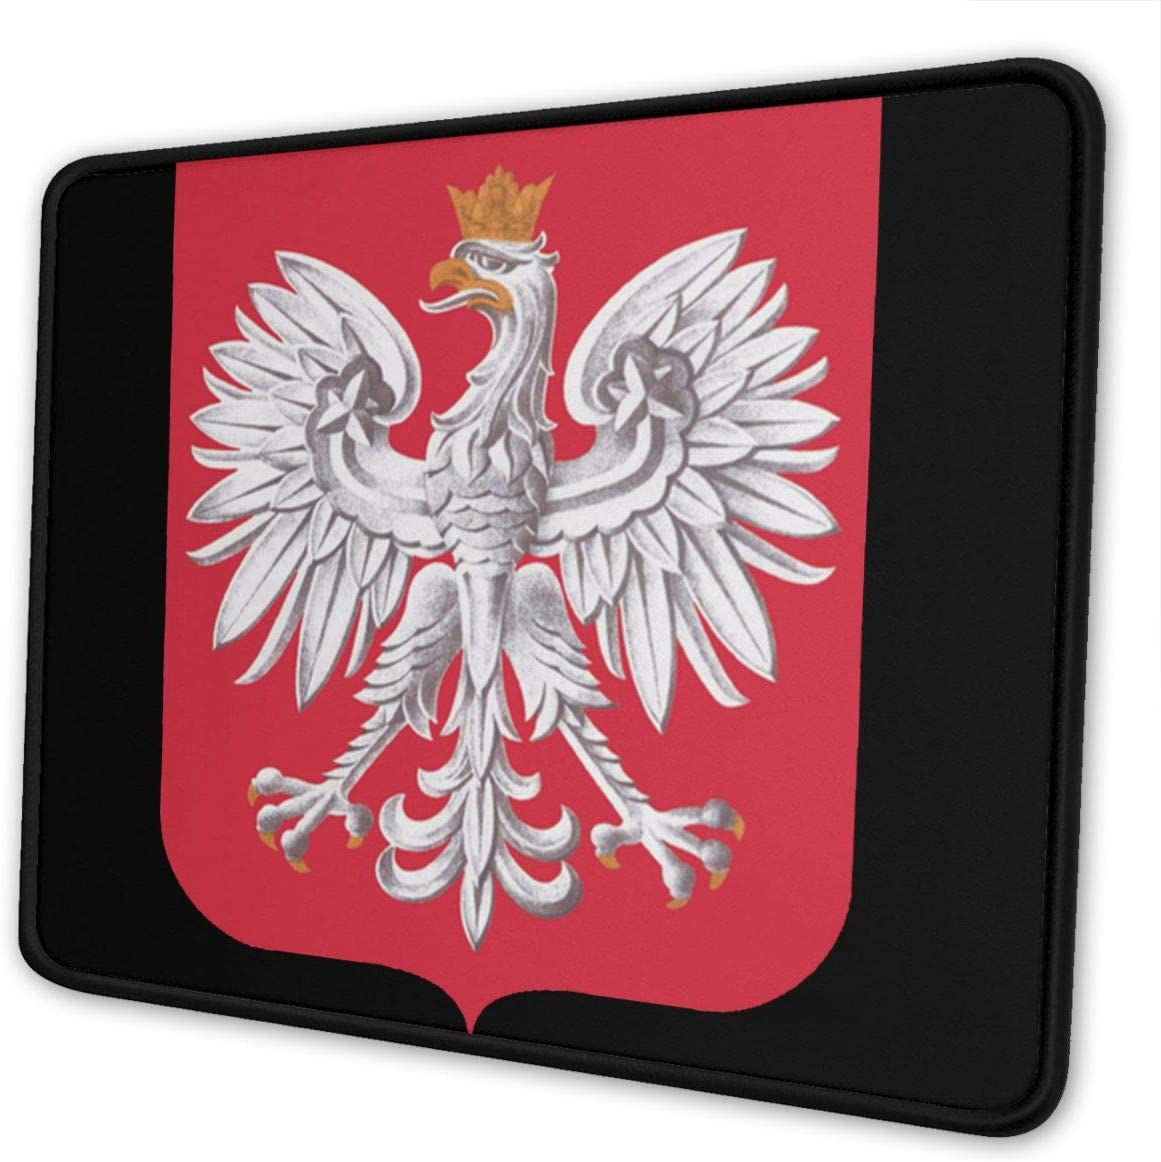 Coat of Arms of Poland Mouse Pads Non-Slip Gaming Mouse Pad Mousepad for Working